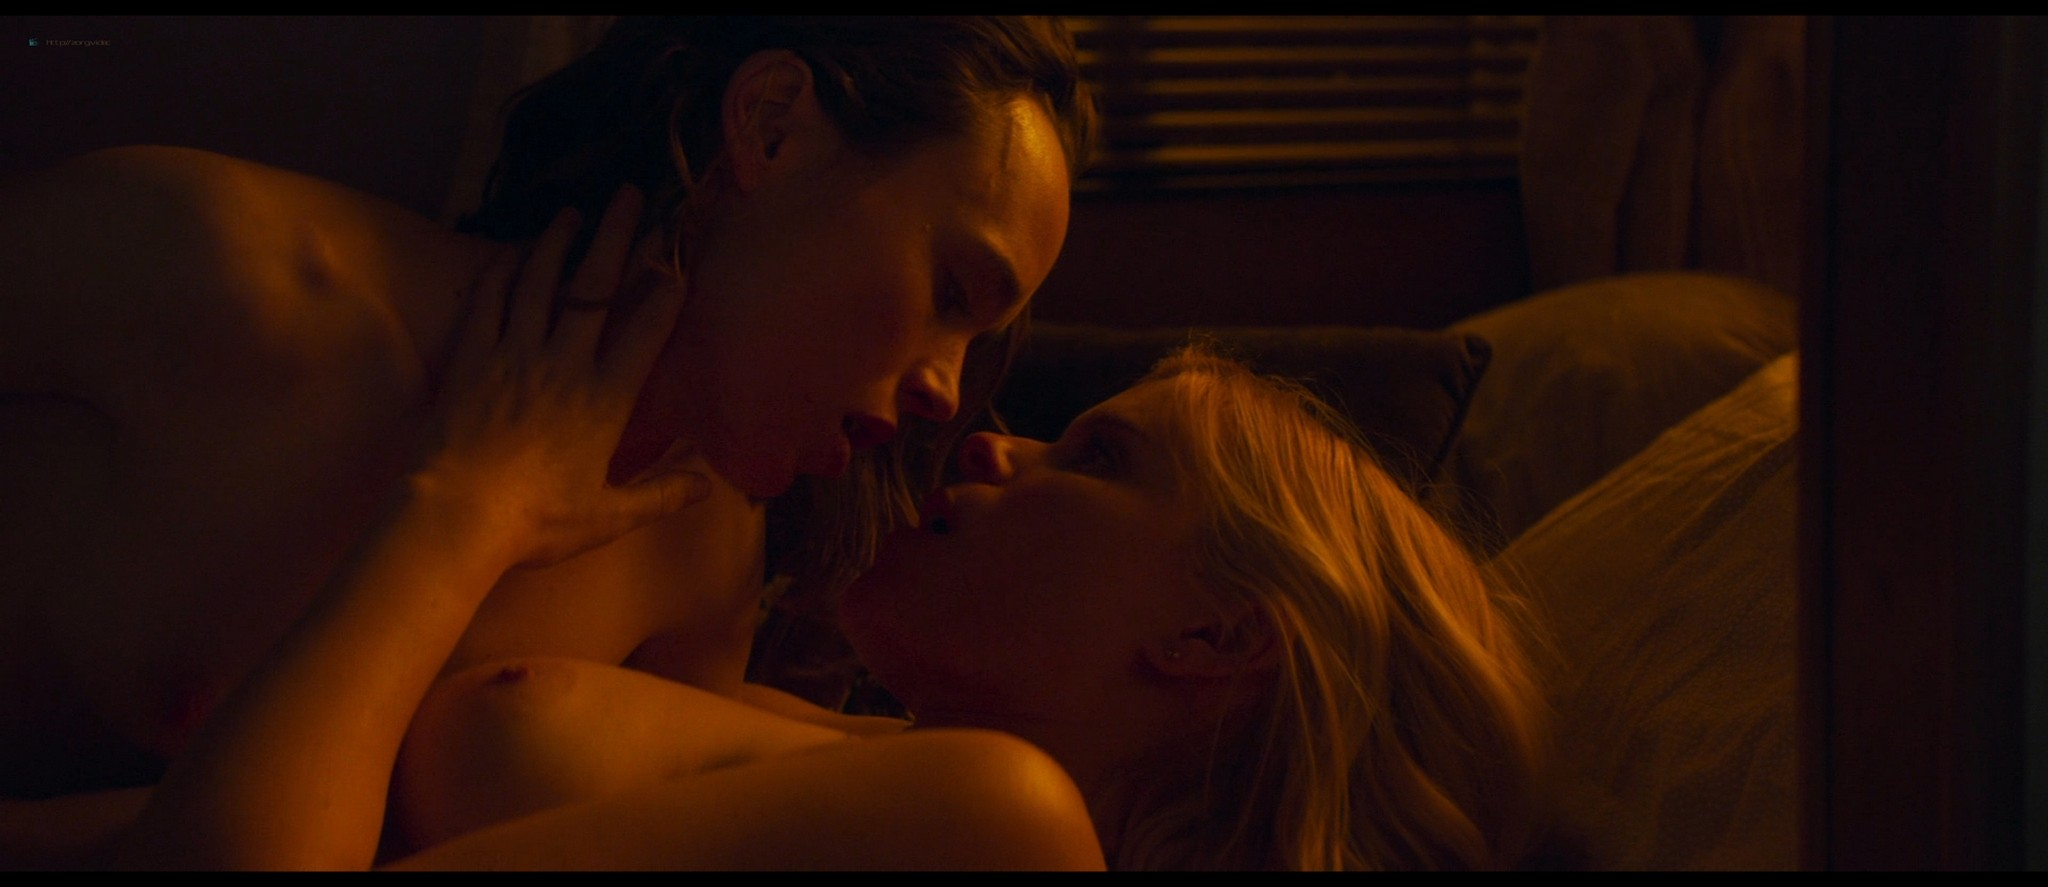 Kate Mara nude topless and lesbian sex with Ellen Page - My Days Of Mercy (2019) HD 1080p BluRay (9)